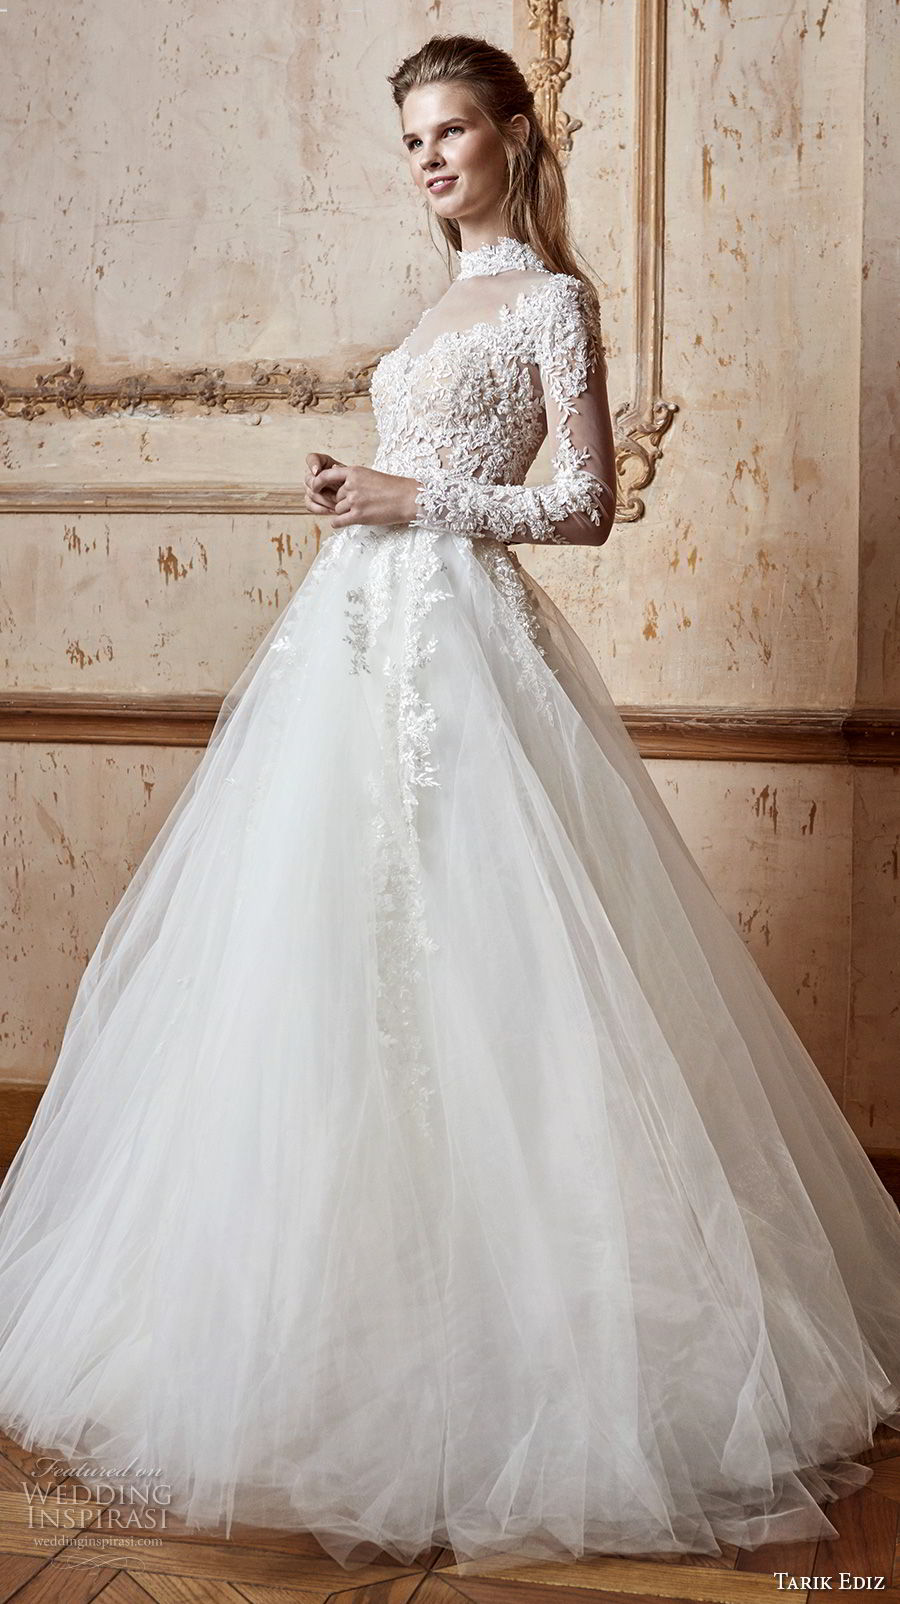 tarik ediz 2017 bridal long sleeves high neck sweetheart neckline heavily embellished bodice romantic a line wedding dress sheer button back sweep train (6) mv